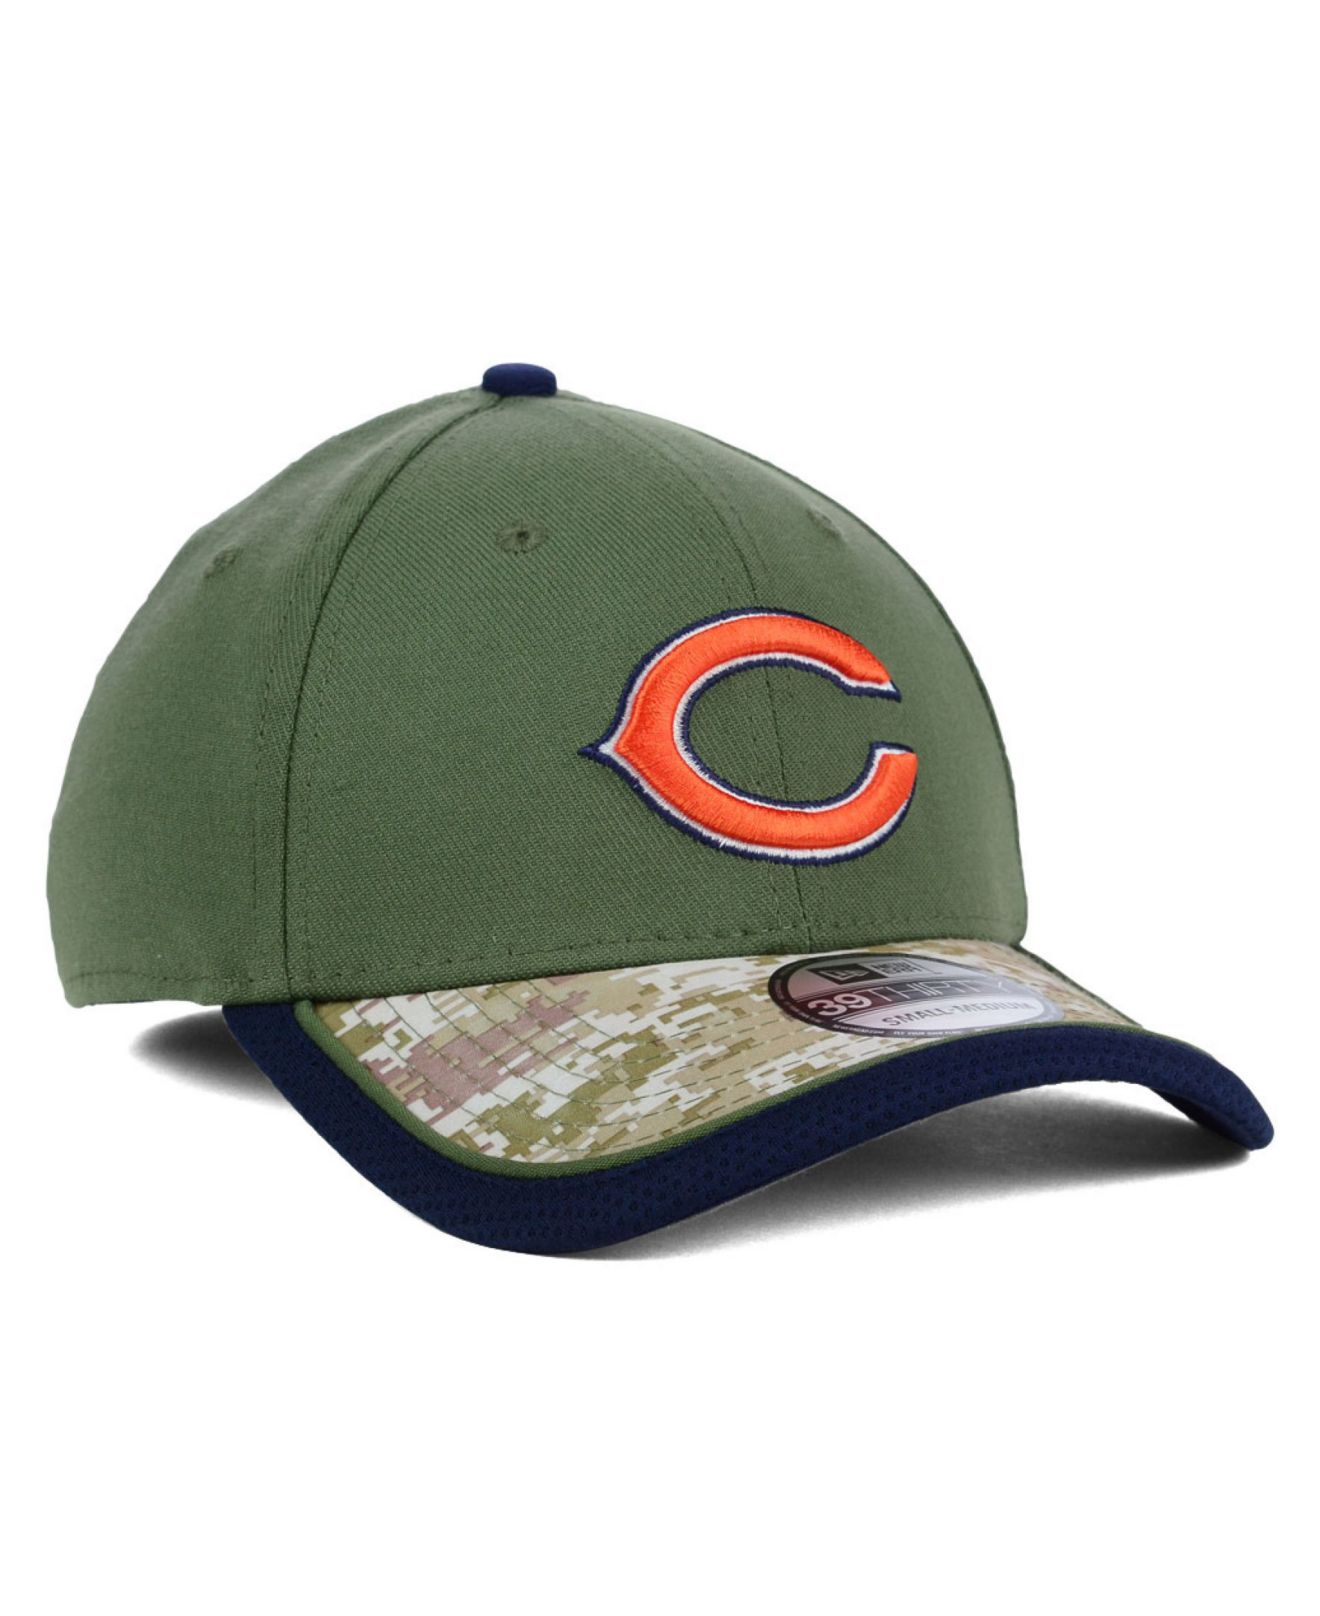 ... promo code for lyst ktz chicago bears salute to service 39thirty cap in  green for men 7624cdac4282